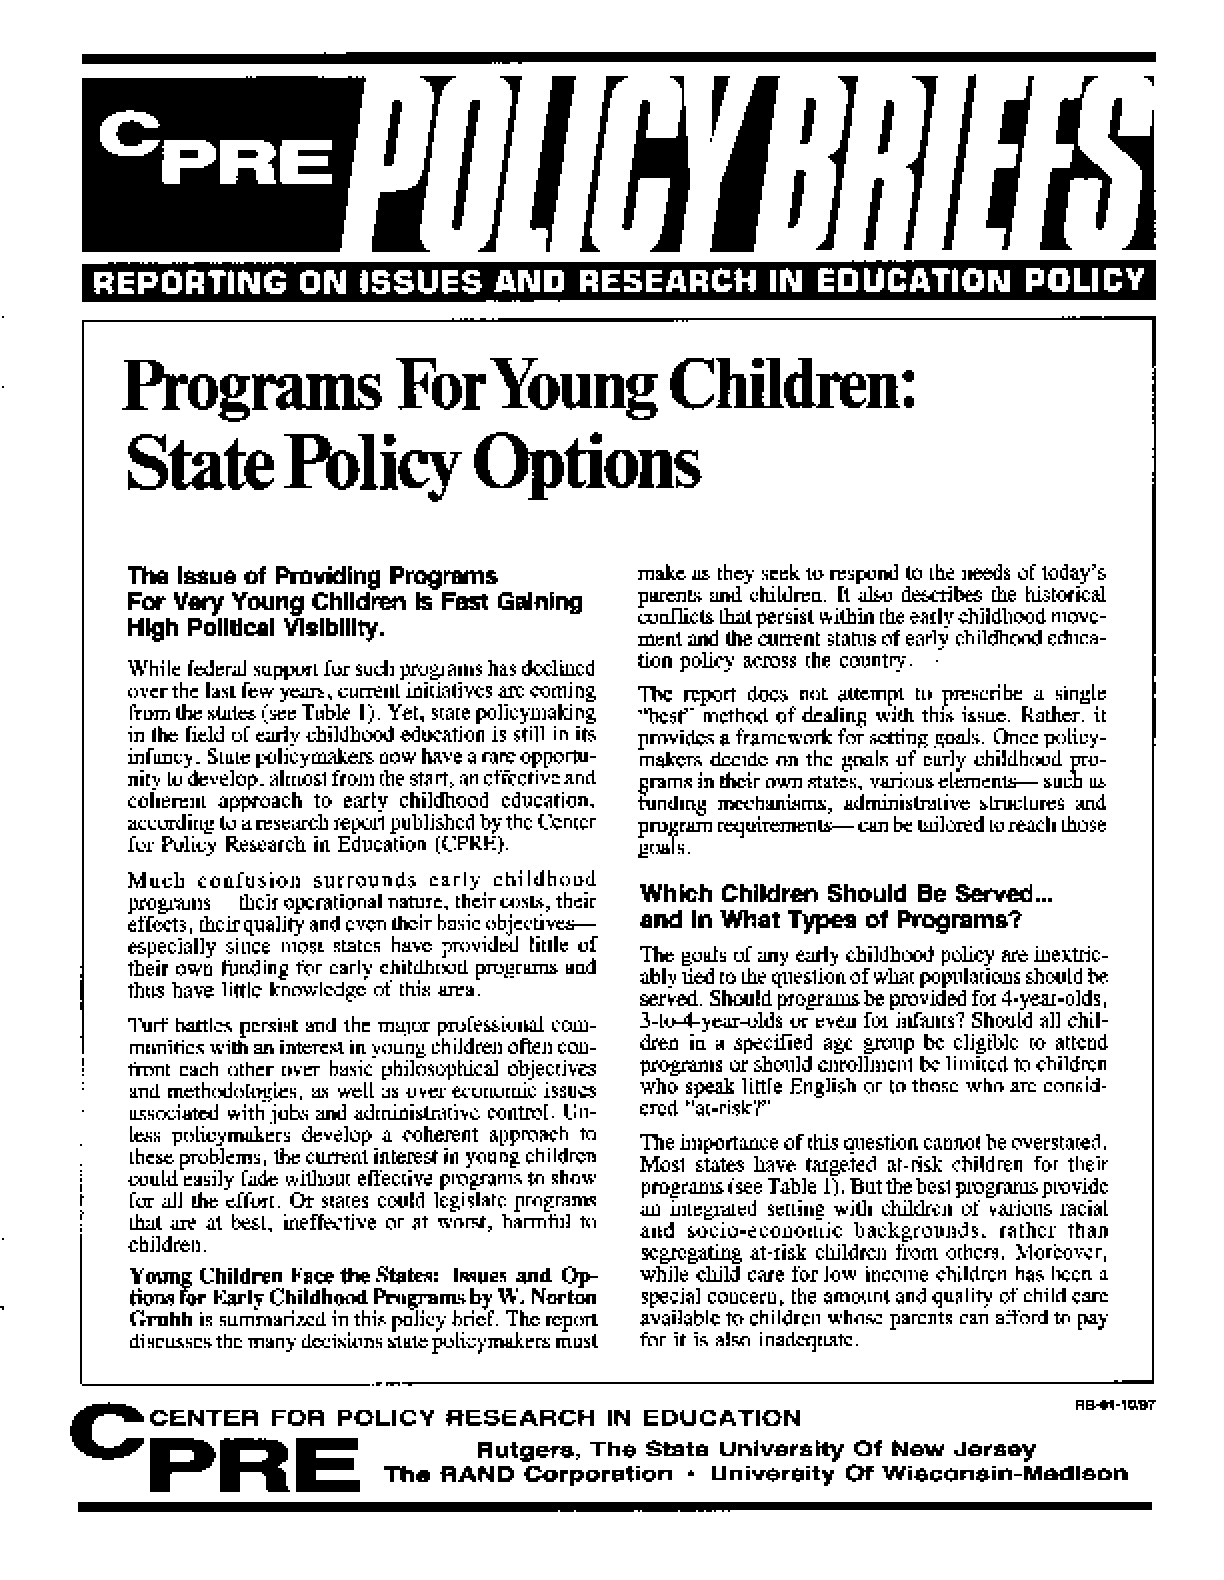 Programs for Young Children: State Policy Options